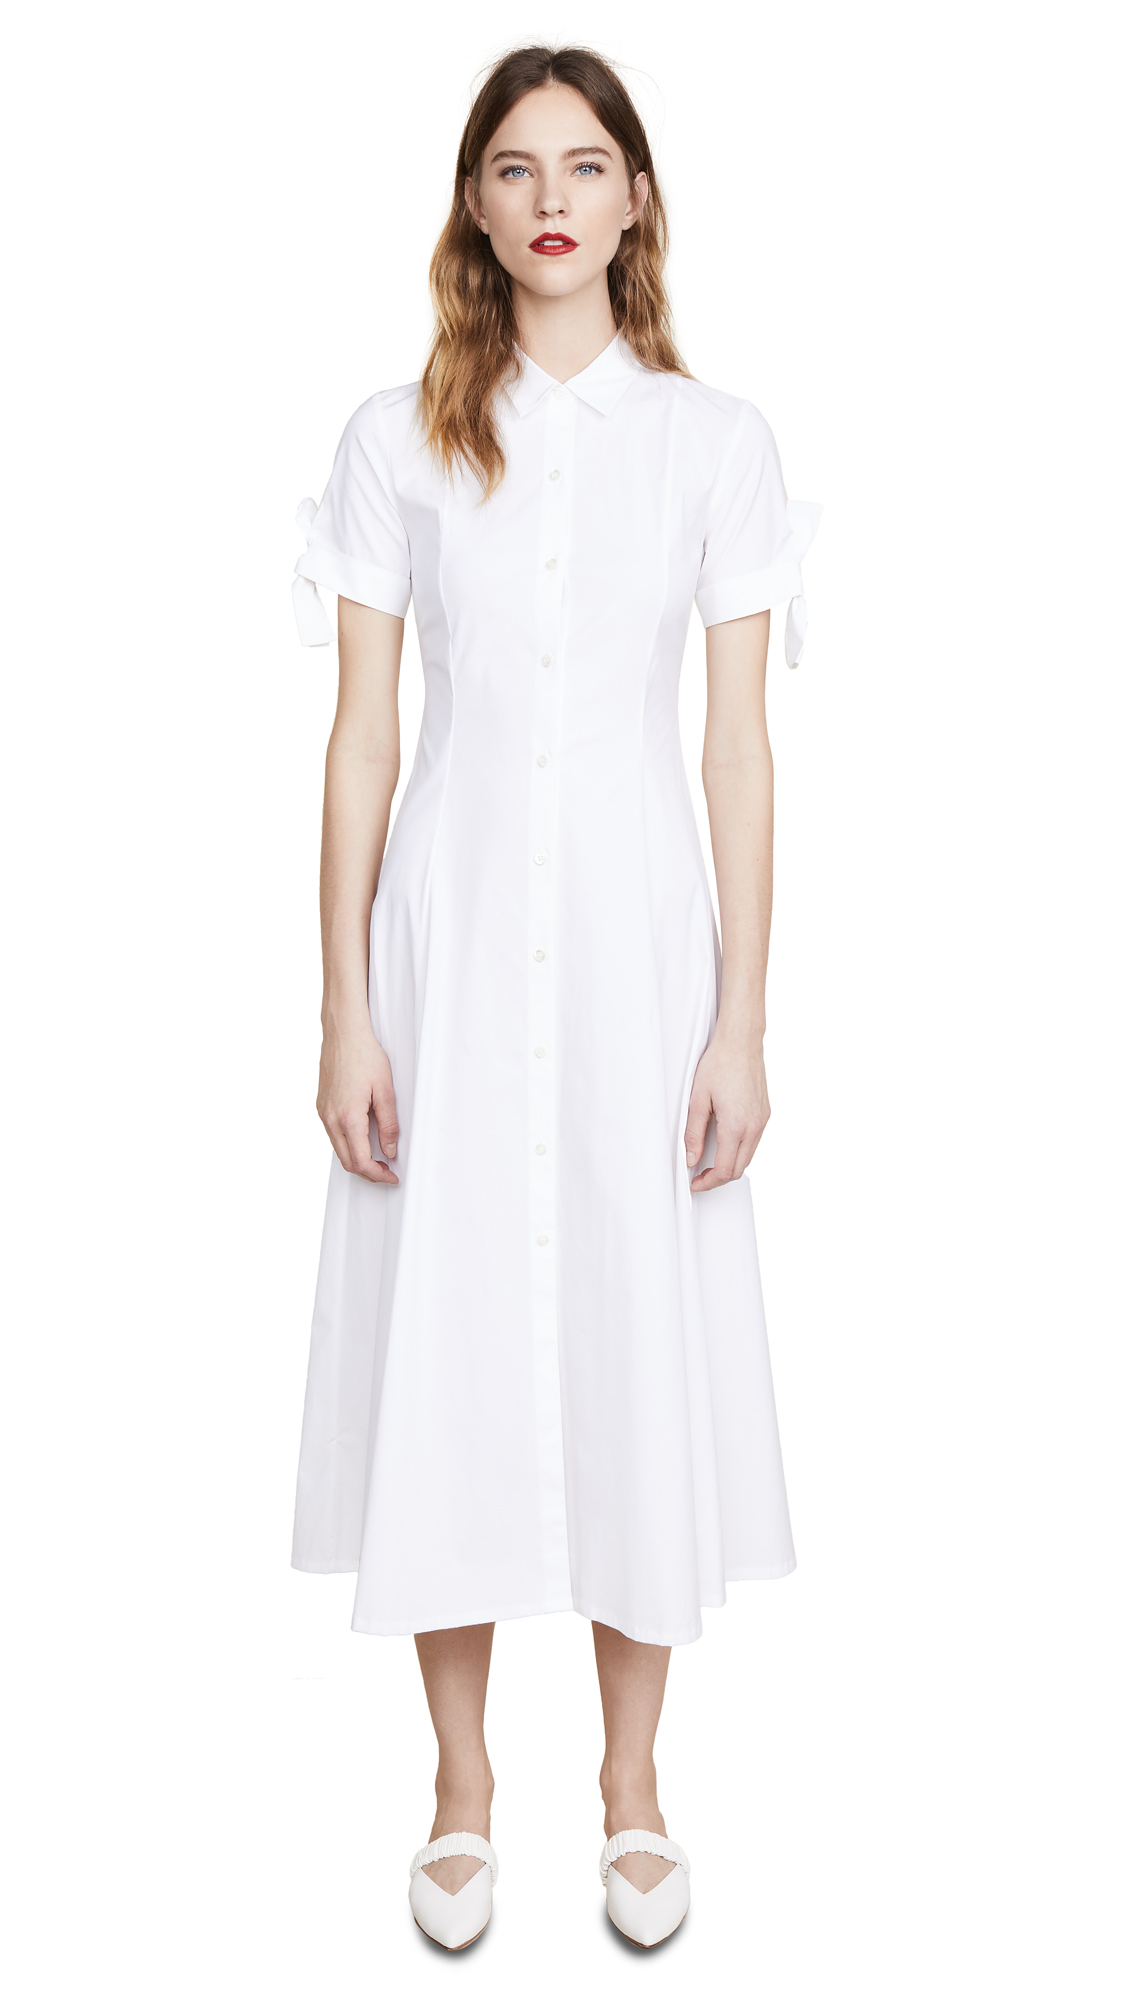 Theory Tie Sleeve Shirtdress - White